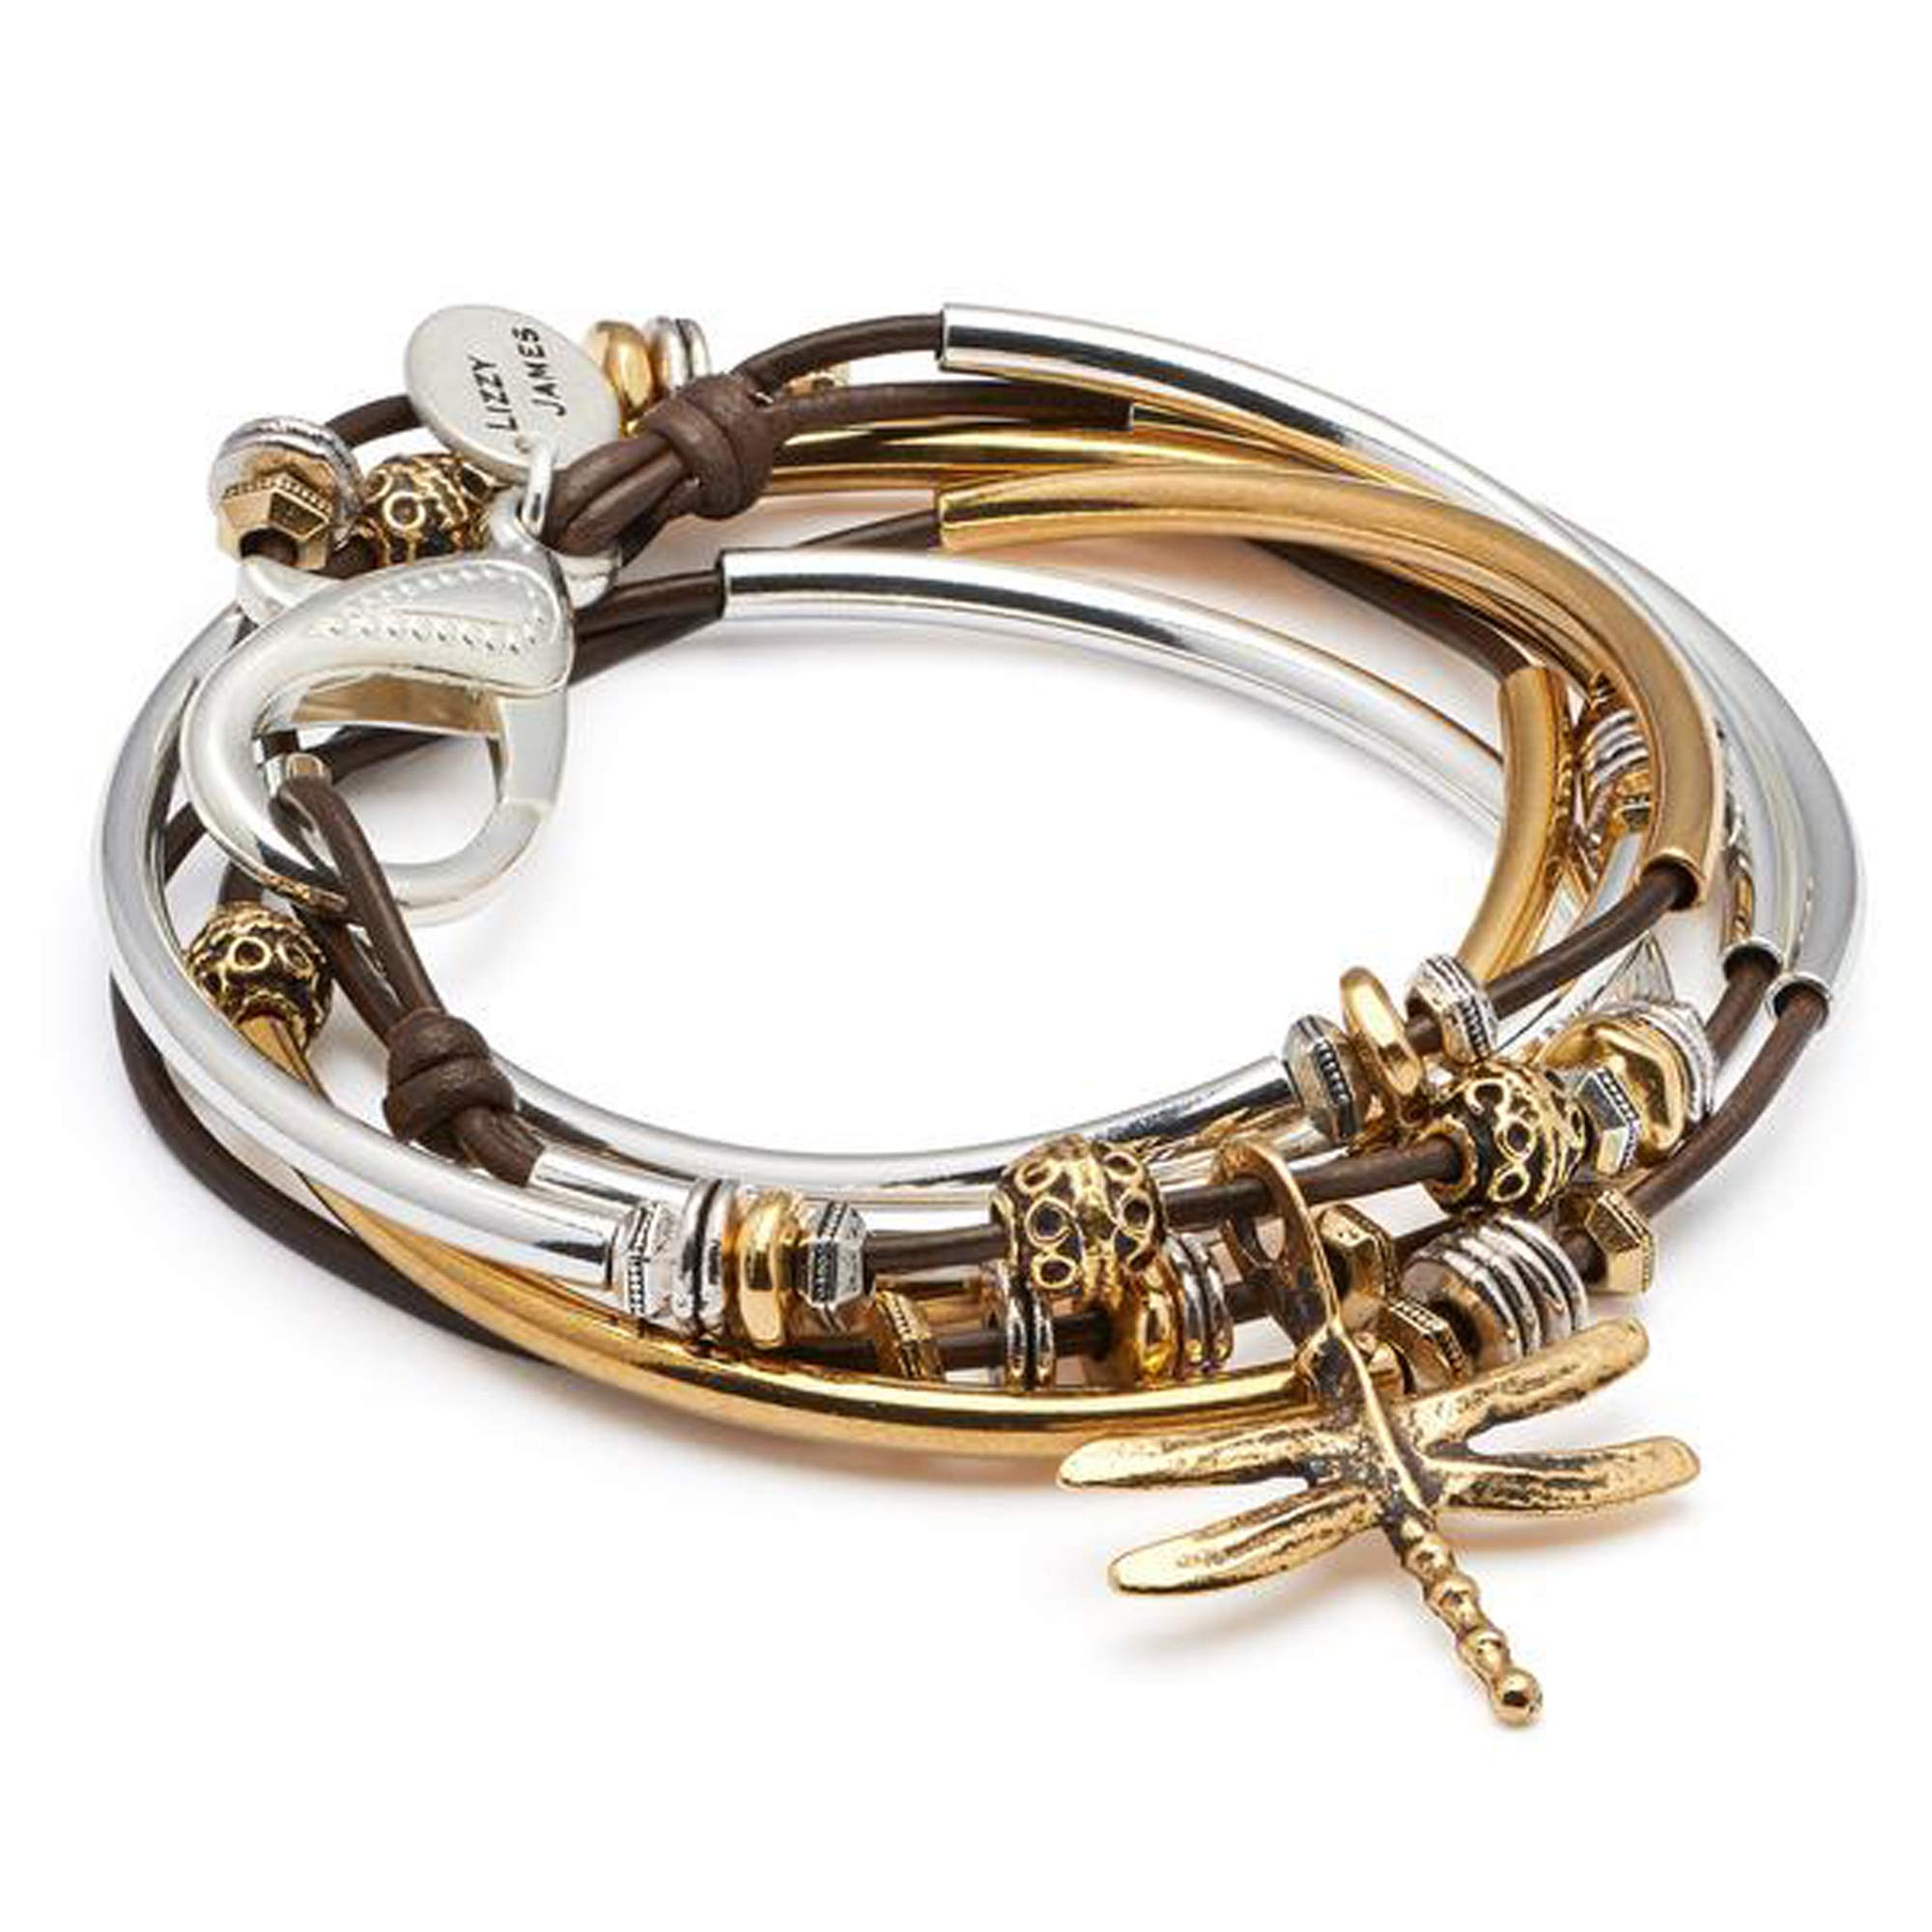 Lizzy James Misty Silver and Gold Charm Bracelet in Gloss Chocolate Leather w Gold Dragonfly Charm (Medium) by Lizzy James